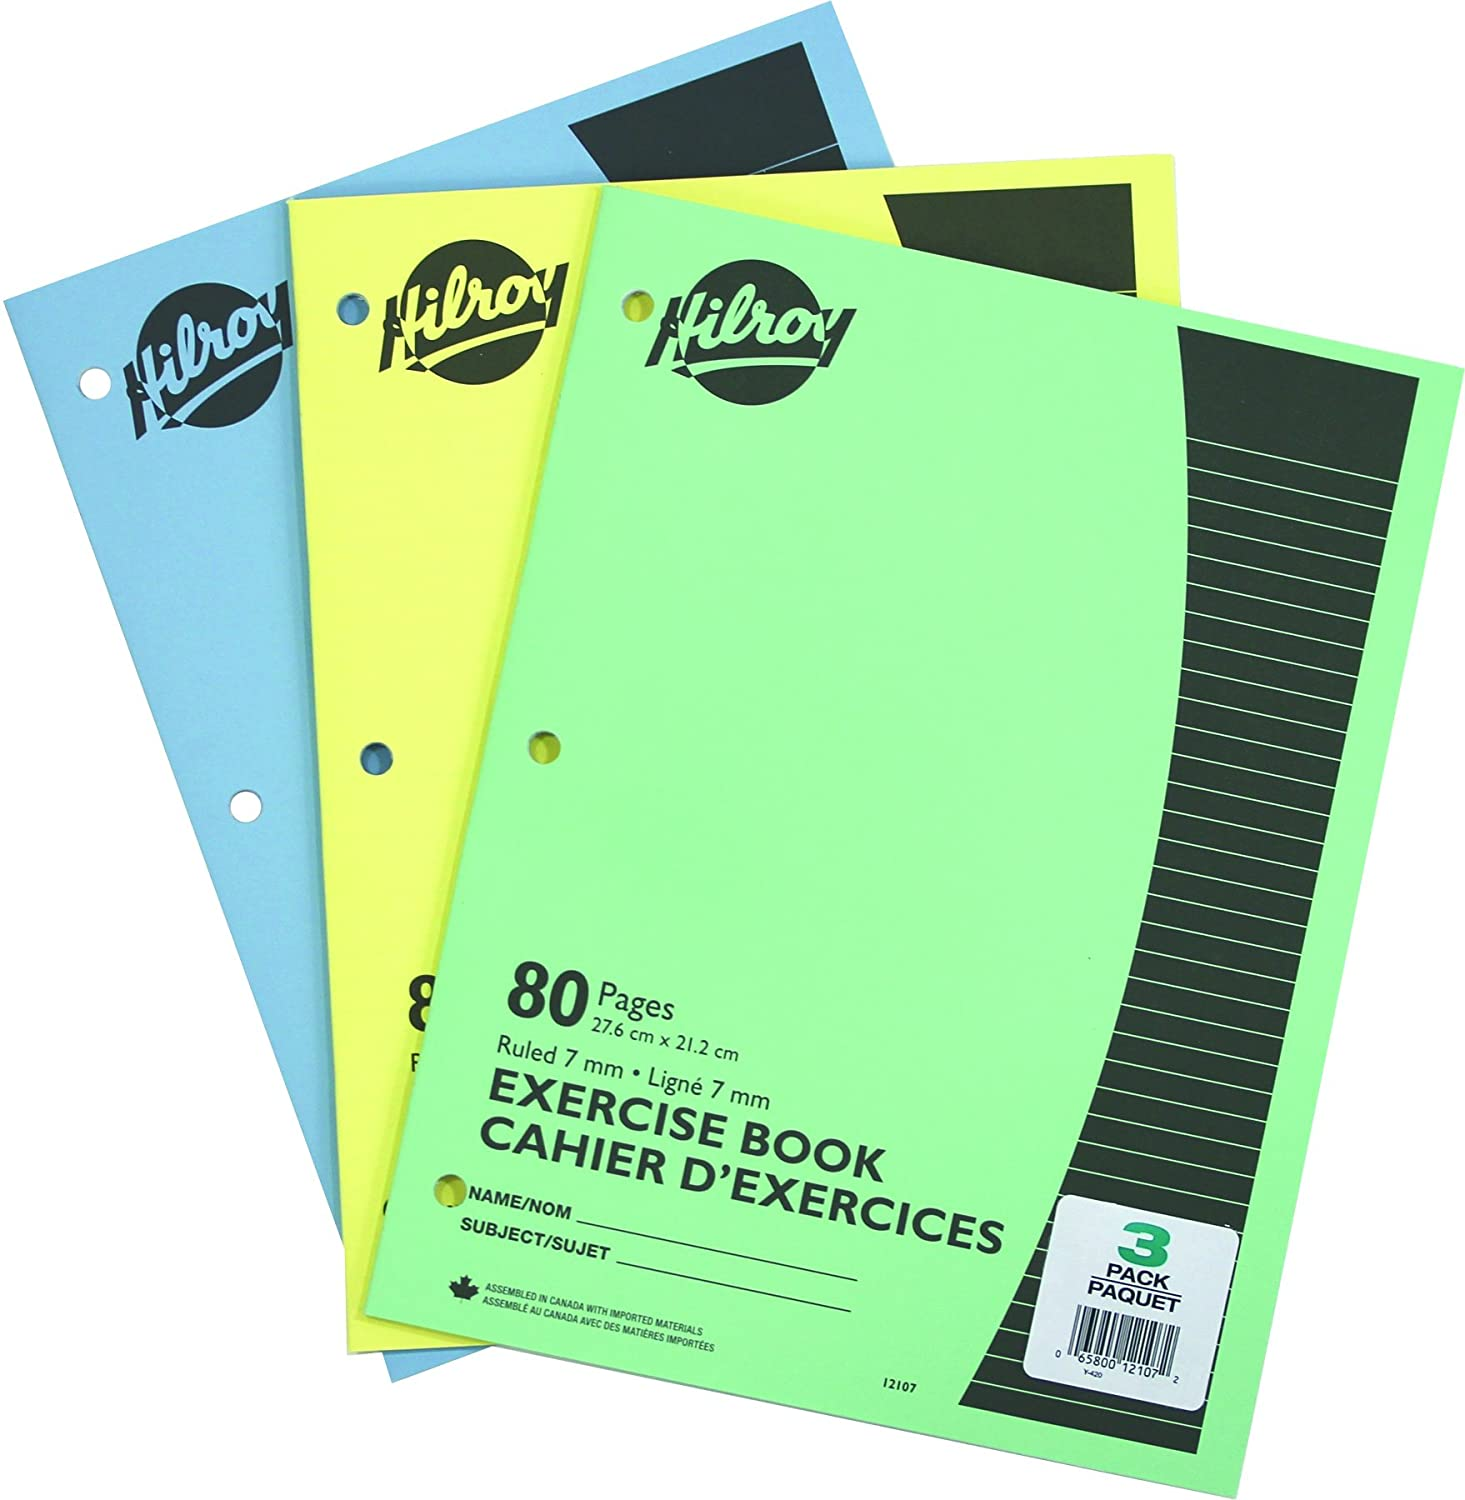 Hilroy Stitched Exercise Book, 3 Hole Punched, 4 Pack, 40 Pages, Assorted Color Covers 12102